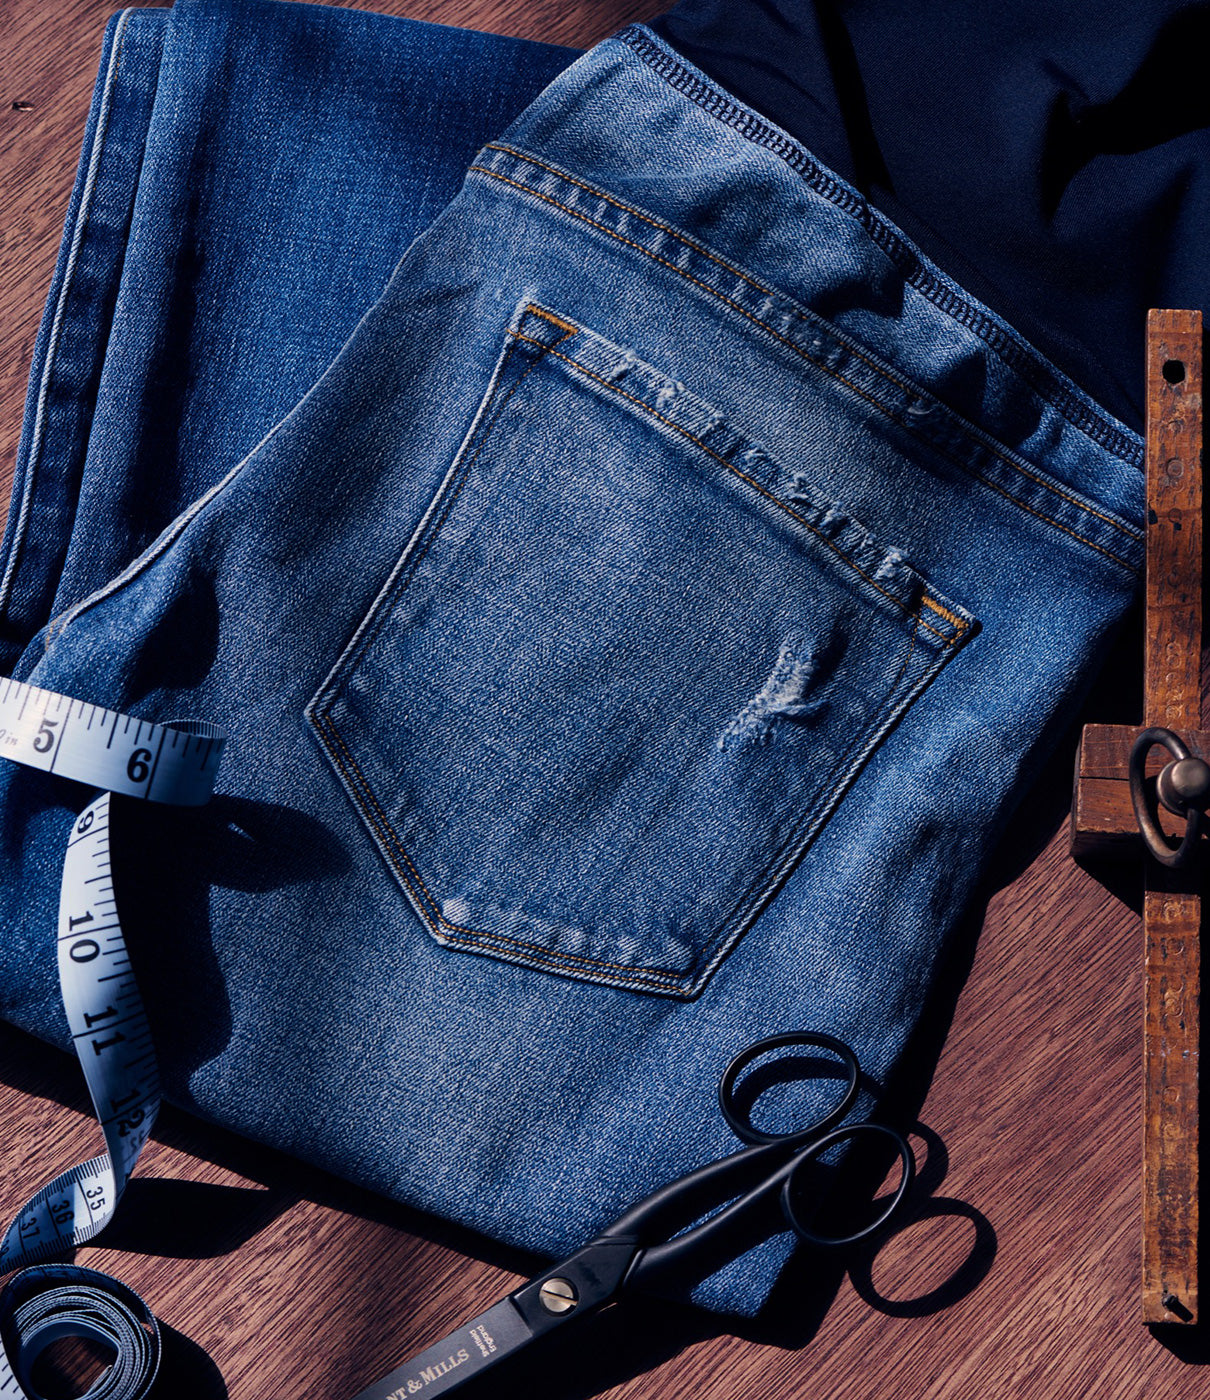 LEARN MORESee our denim story